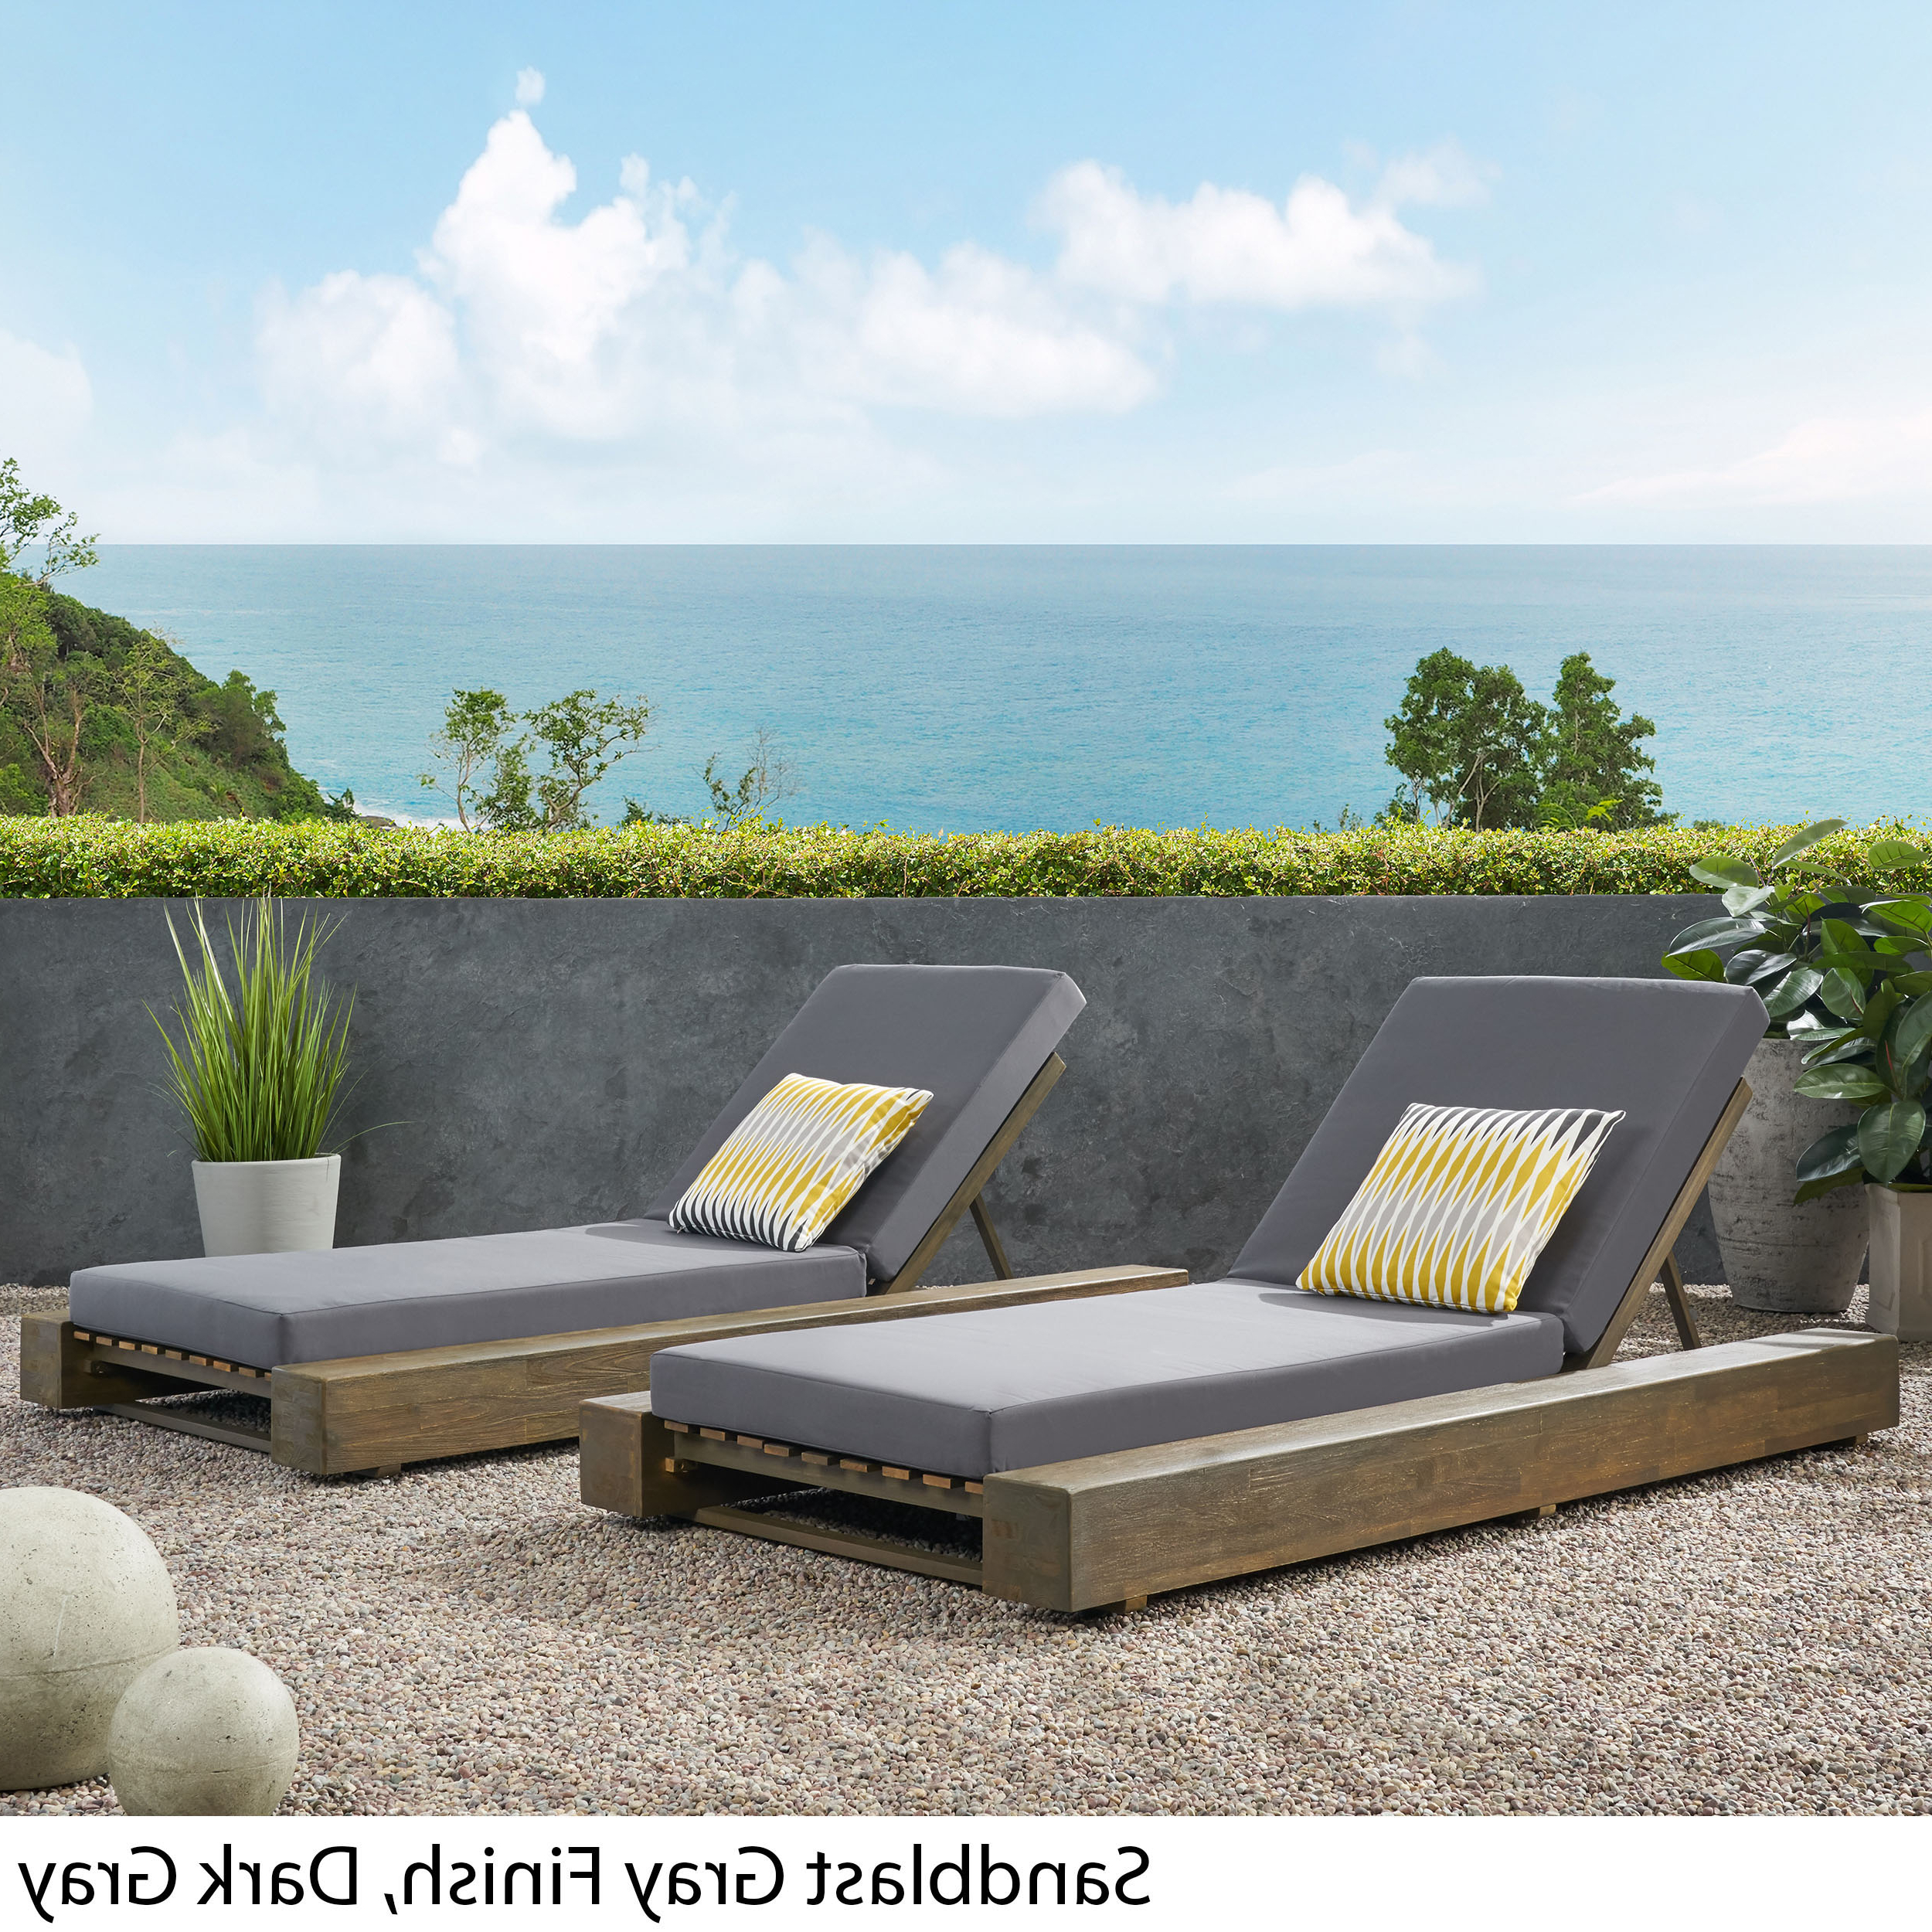 Details About Ursula Outdoor Acacia Wood Chaise Lounge And Cushion Sets (set Of 2) With 2020 Outdoor Acacia Wood Chaise Lounges With Cushion (View 19 of 25)